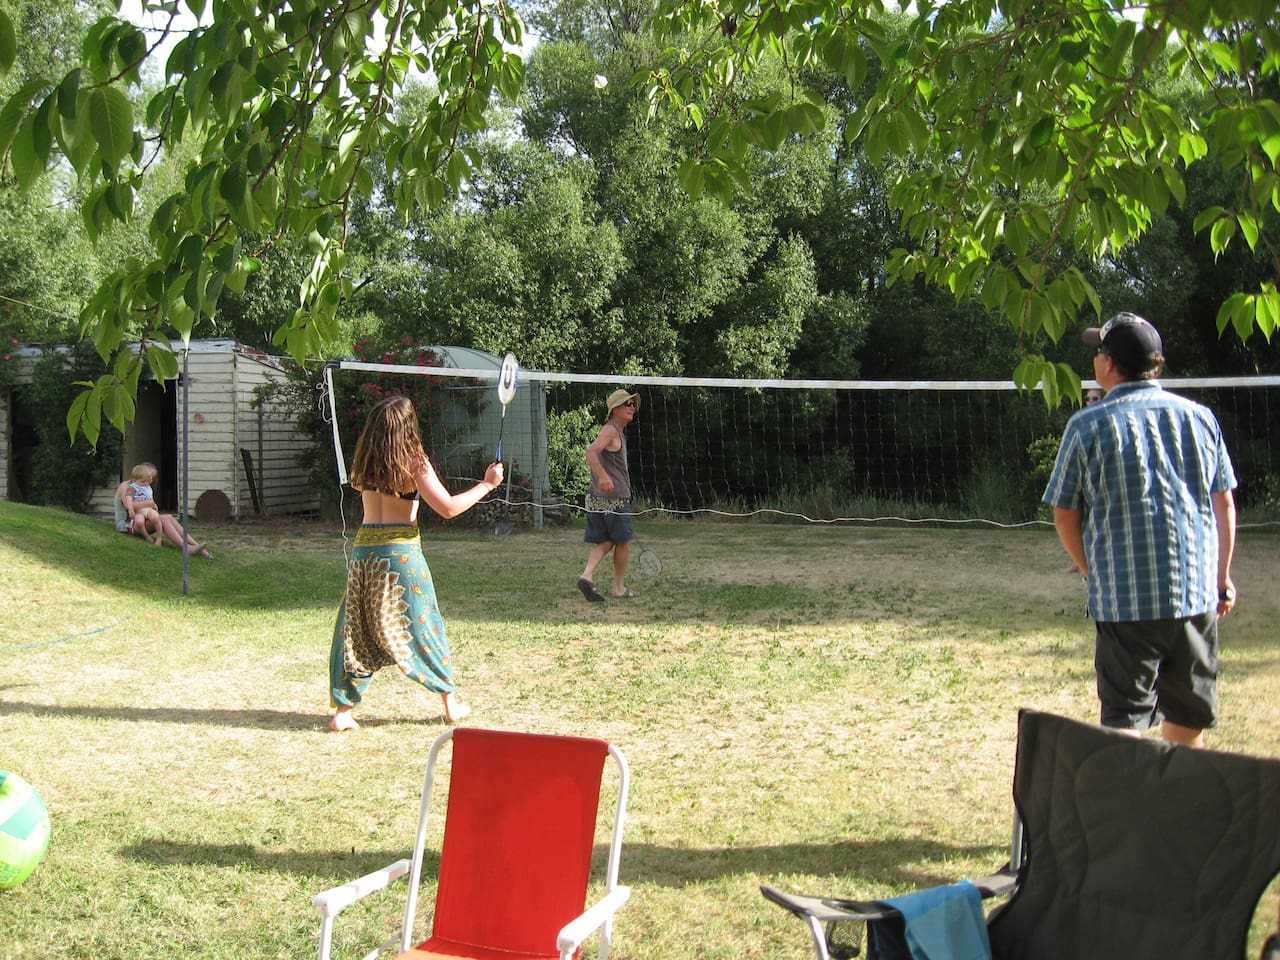 Badminton on the lawn